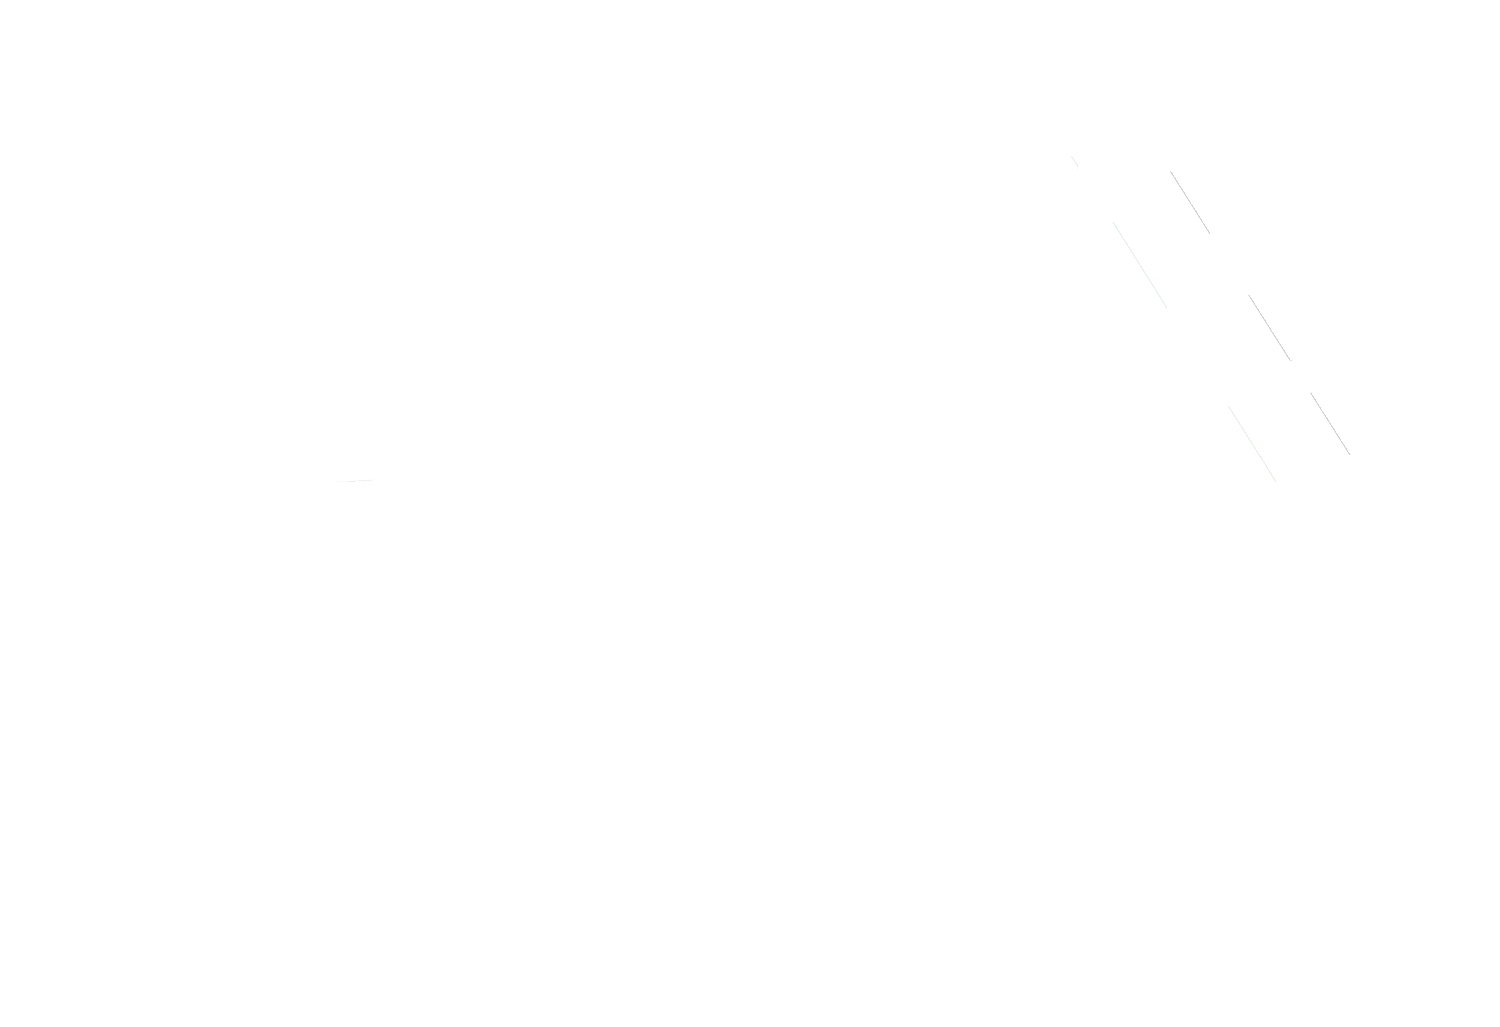 Jul Big Green